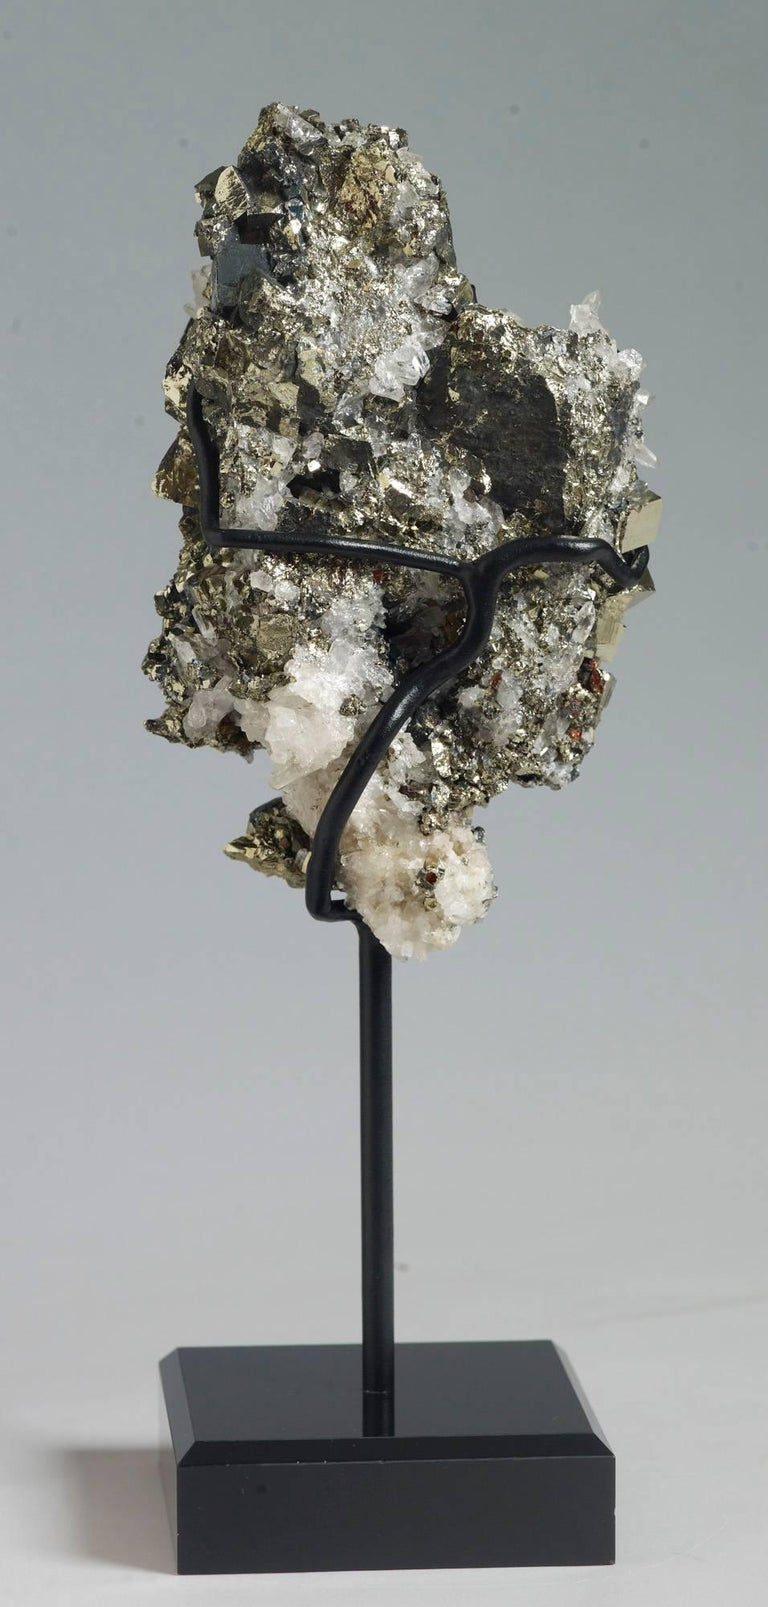 18th Century and Earlier Pyrite and Quartz Crystals For Sale